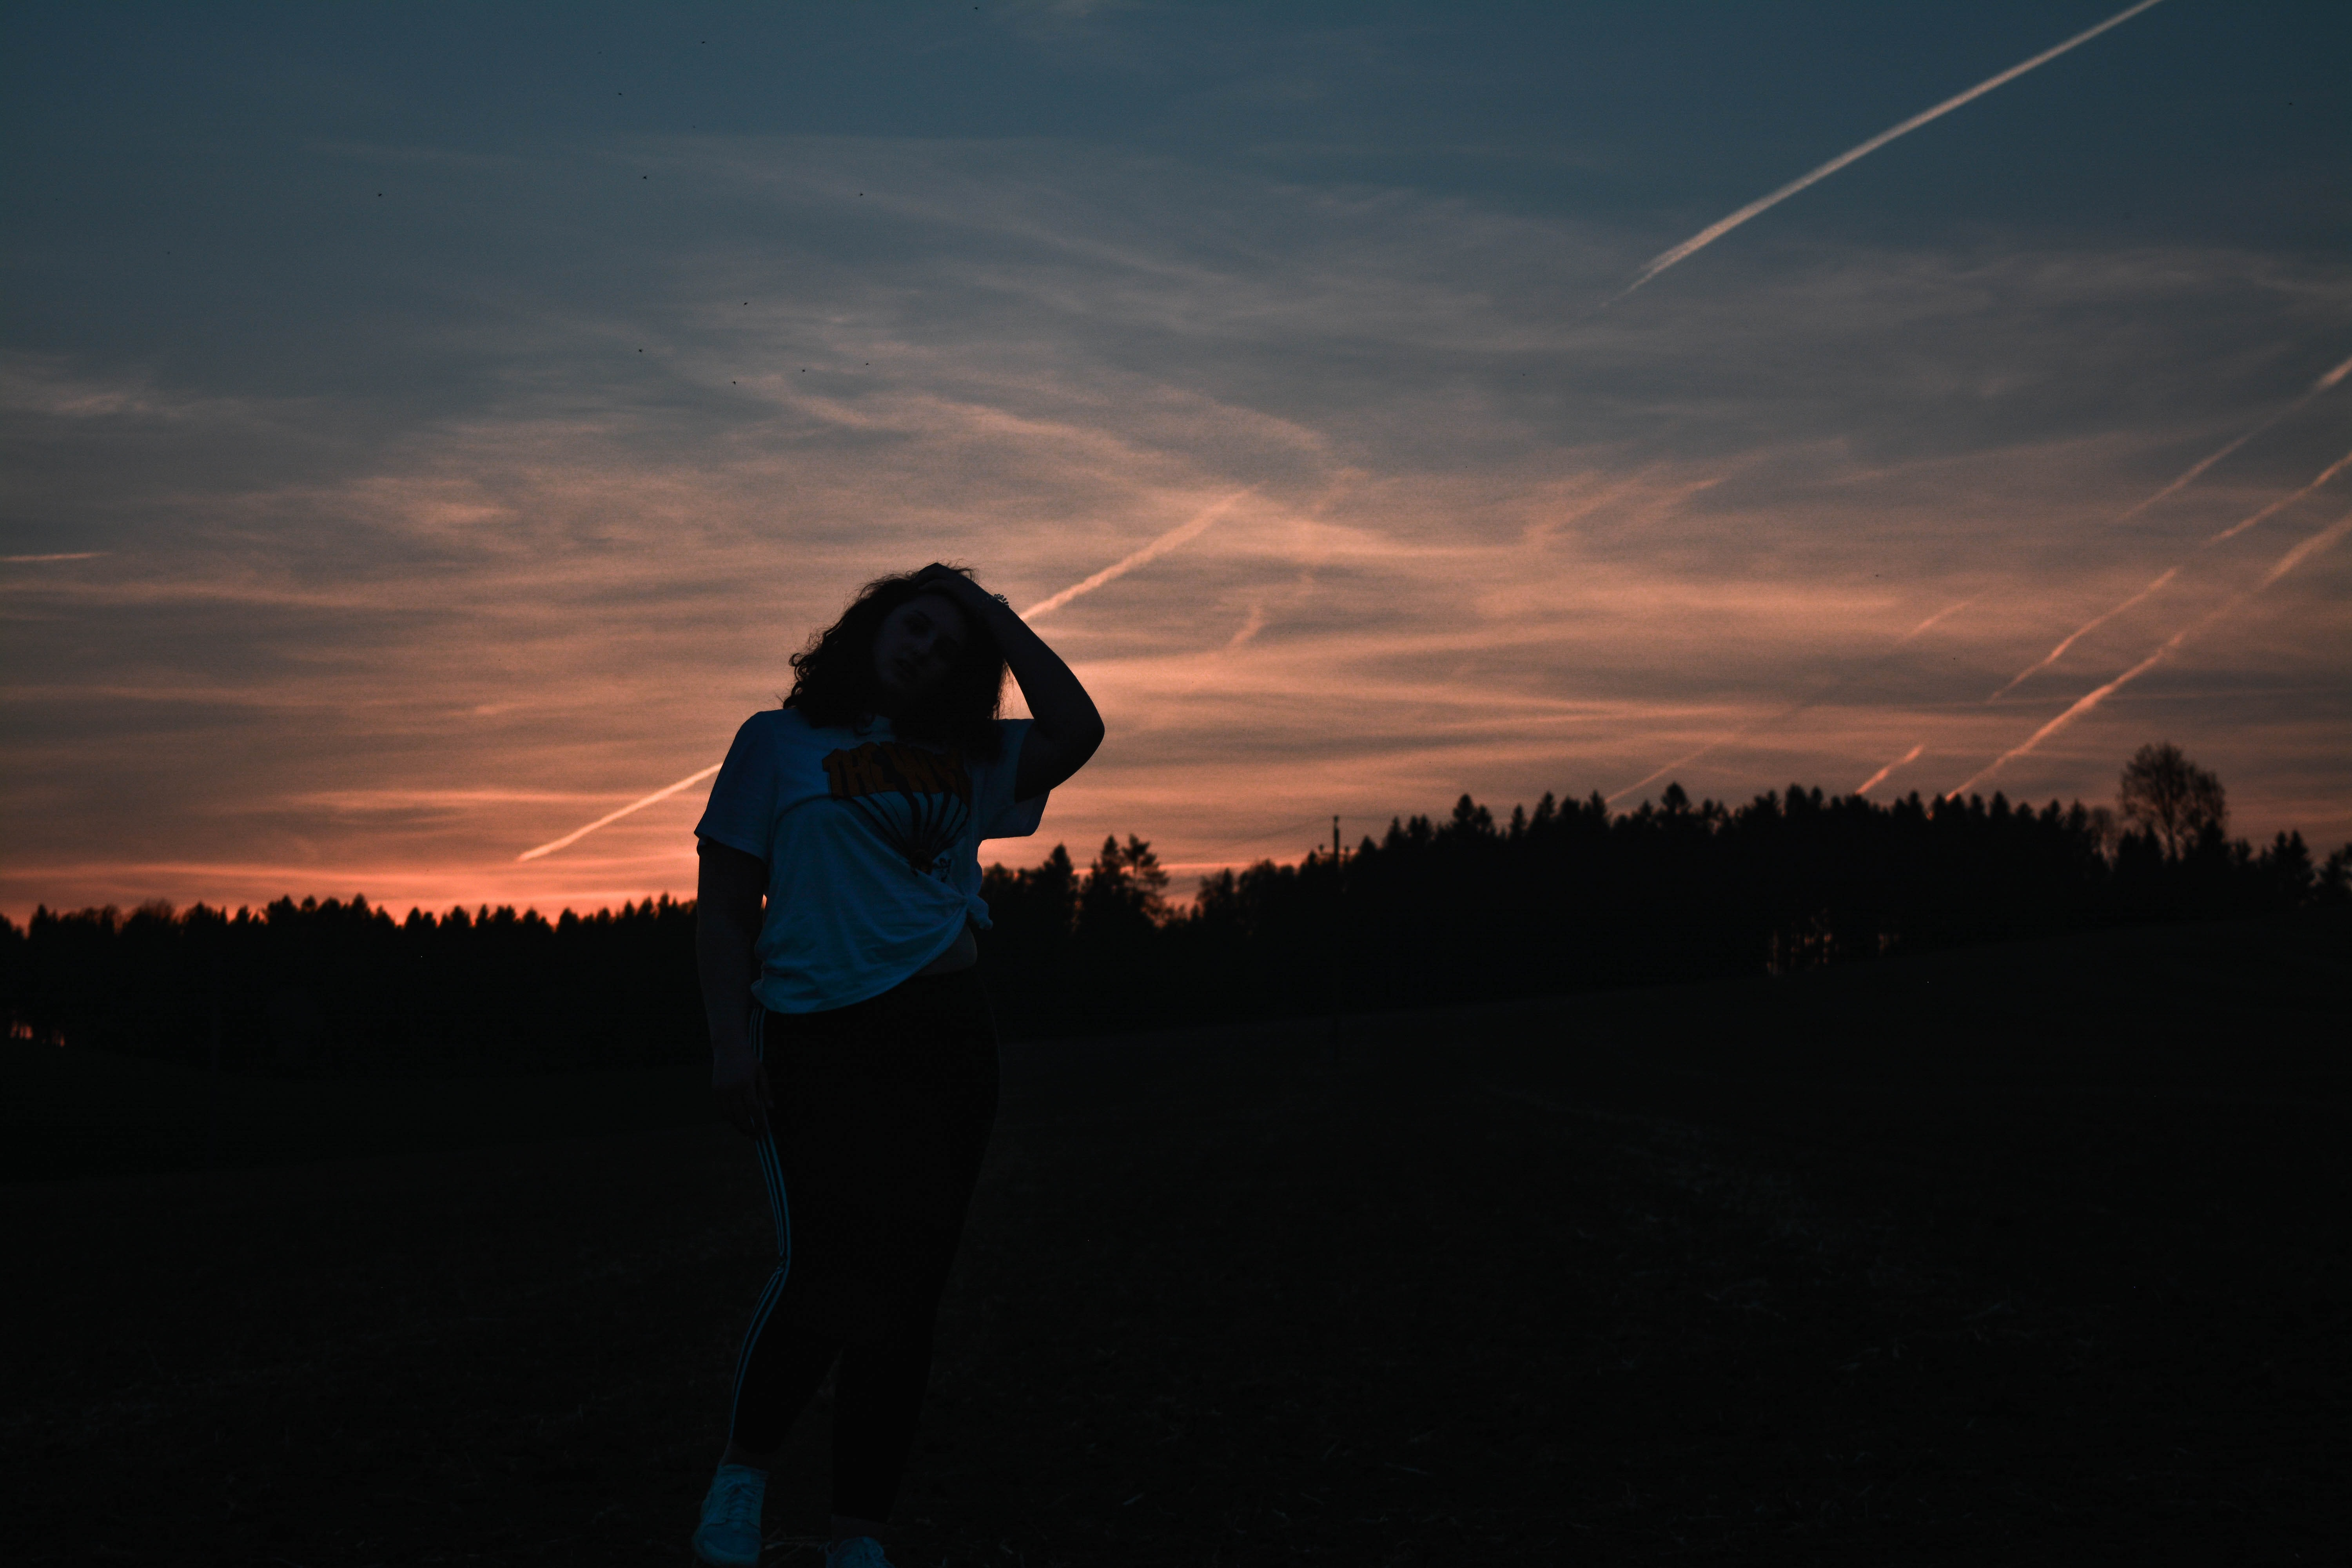 silhouette of woman in front of falling stars at golden hour